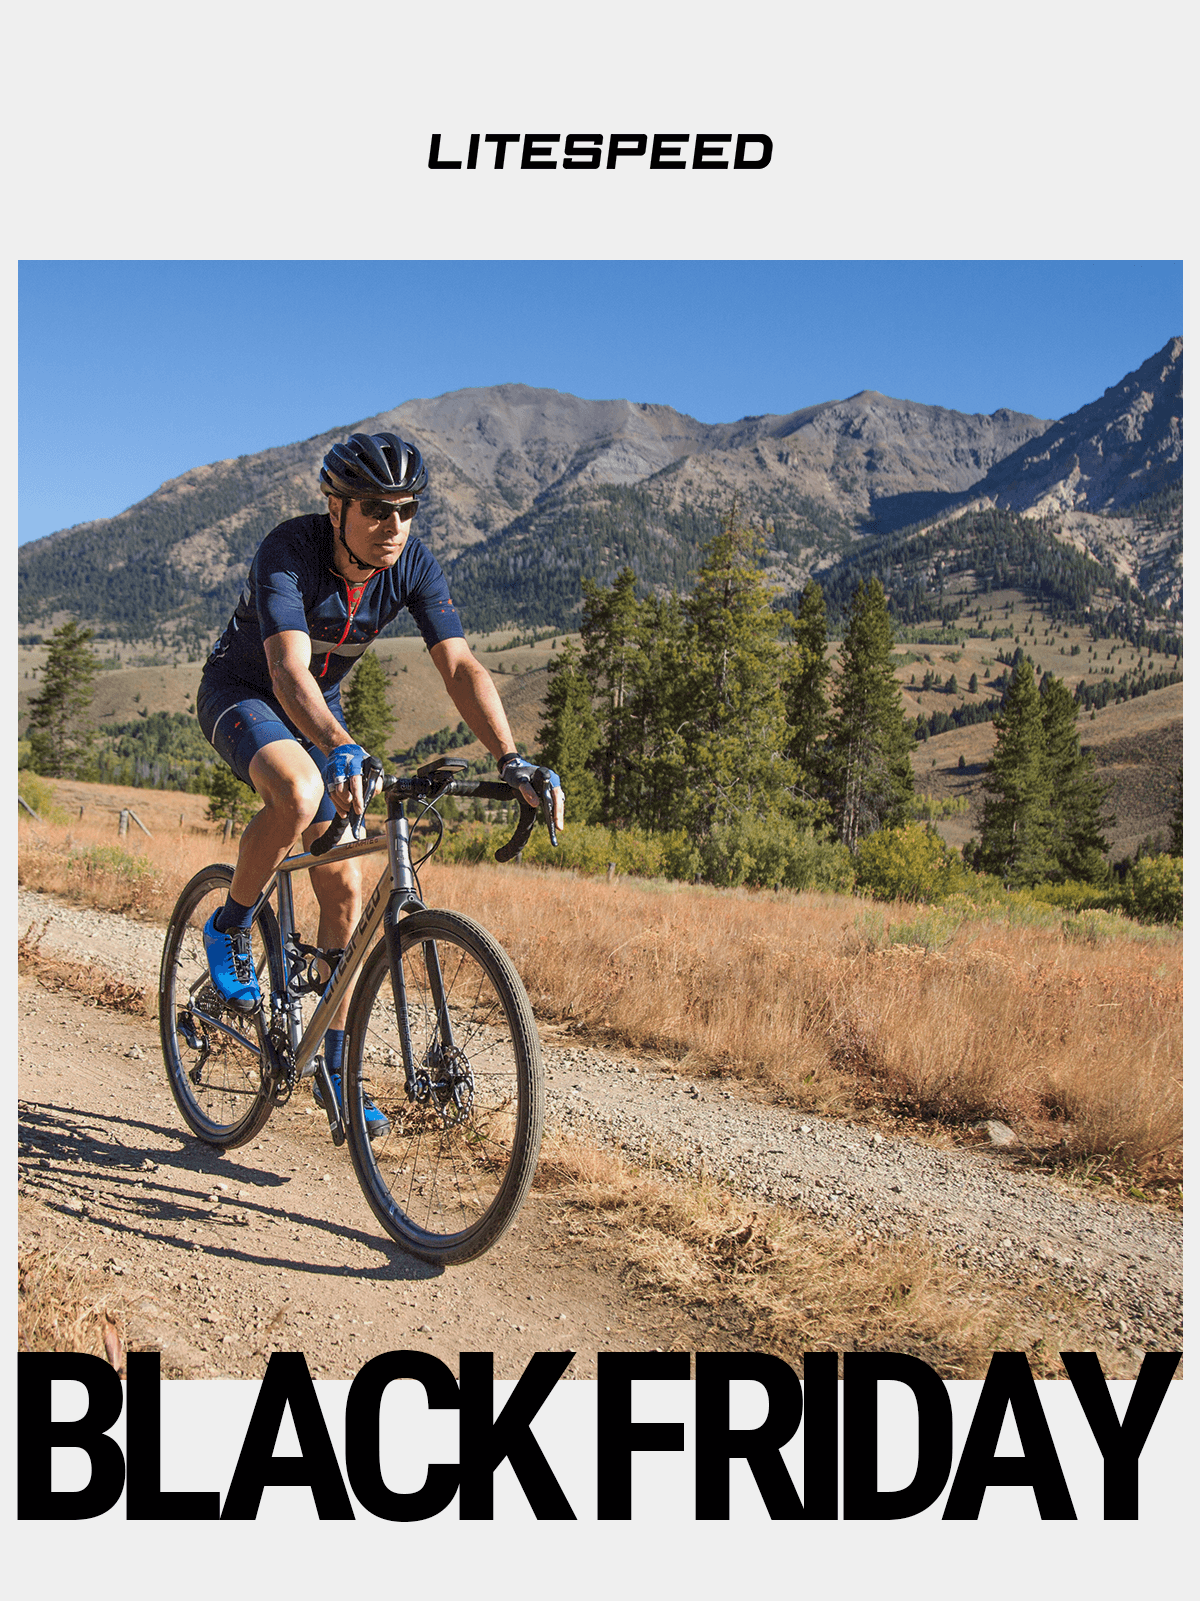 Litespeed's biggest sale of the year! Shop now and save up to $1975 on a new bike.